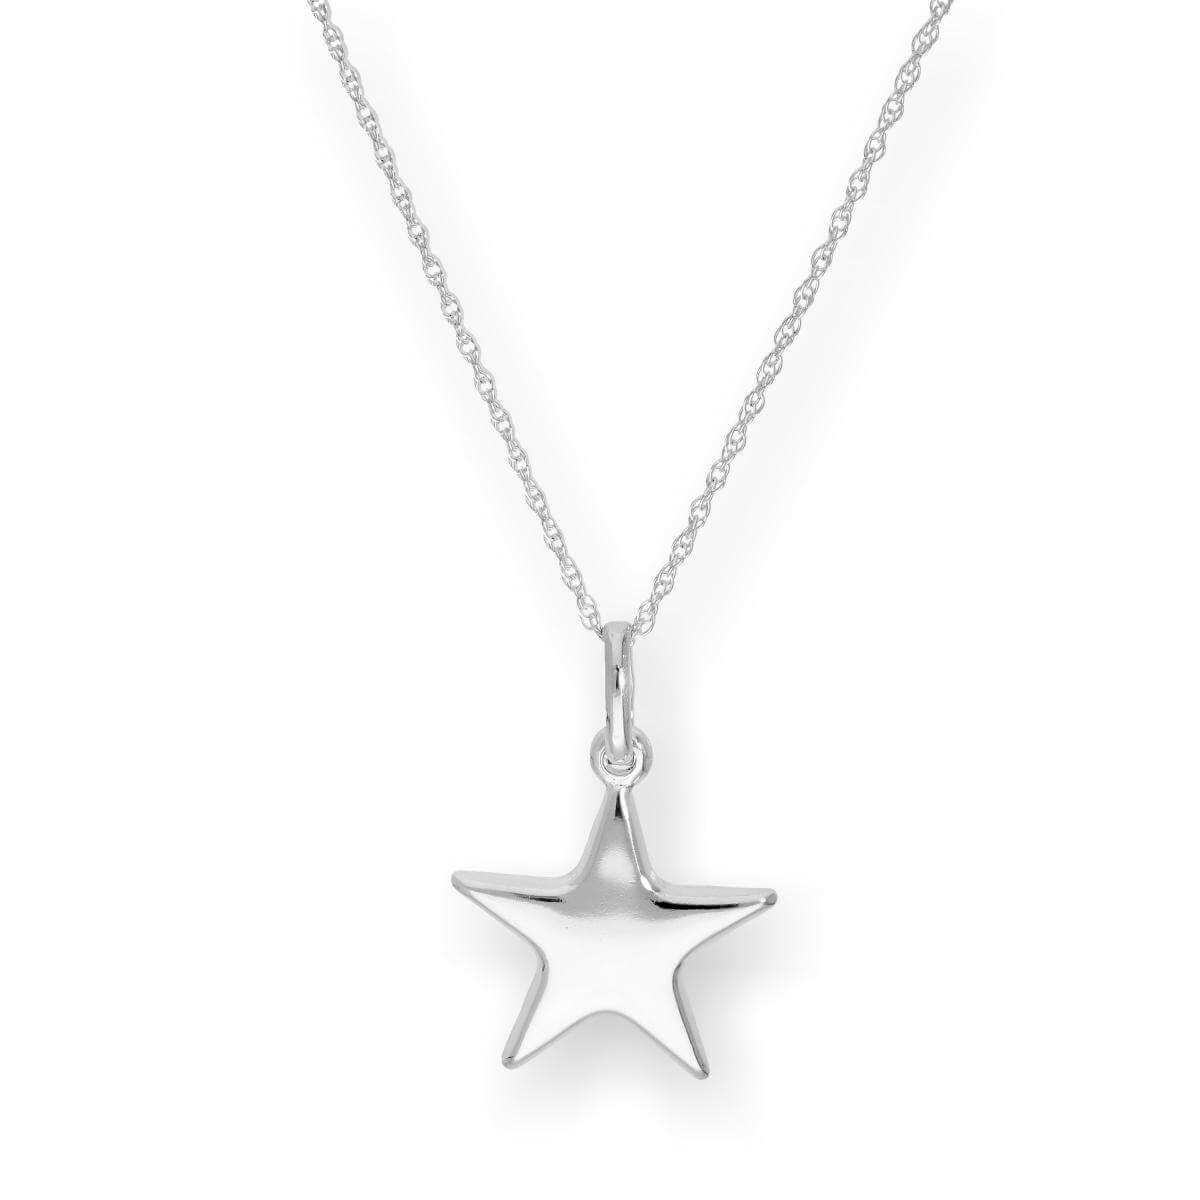 Sterling Silver Star Pendant on Chain 16 - 22 Inches